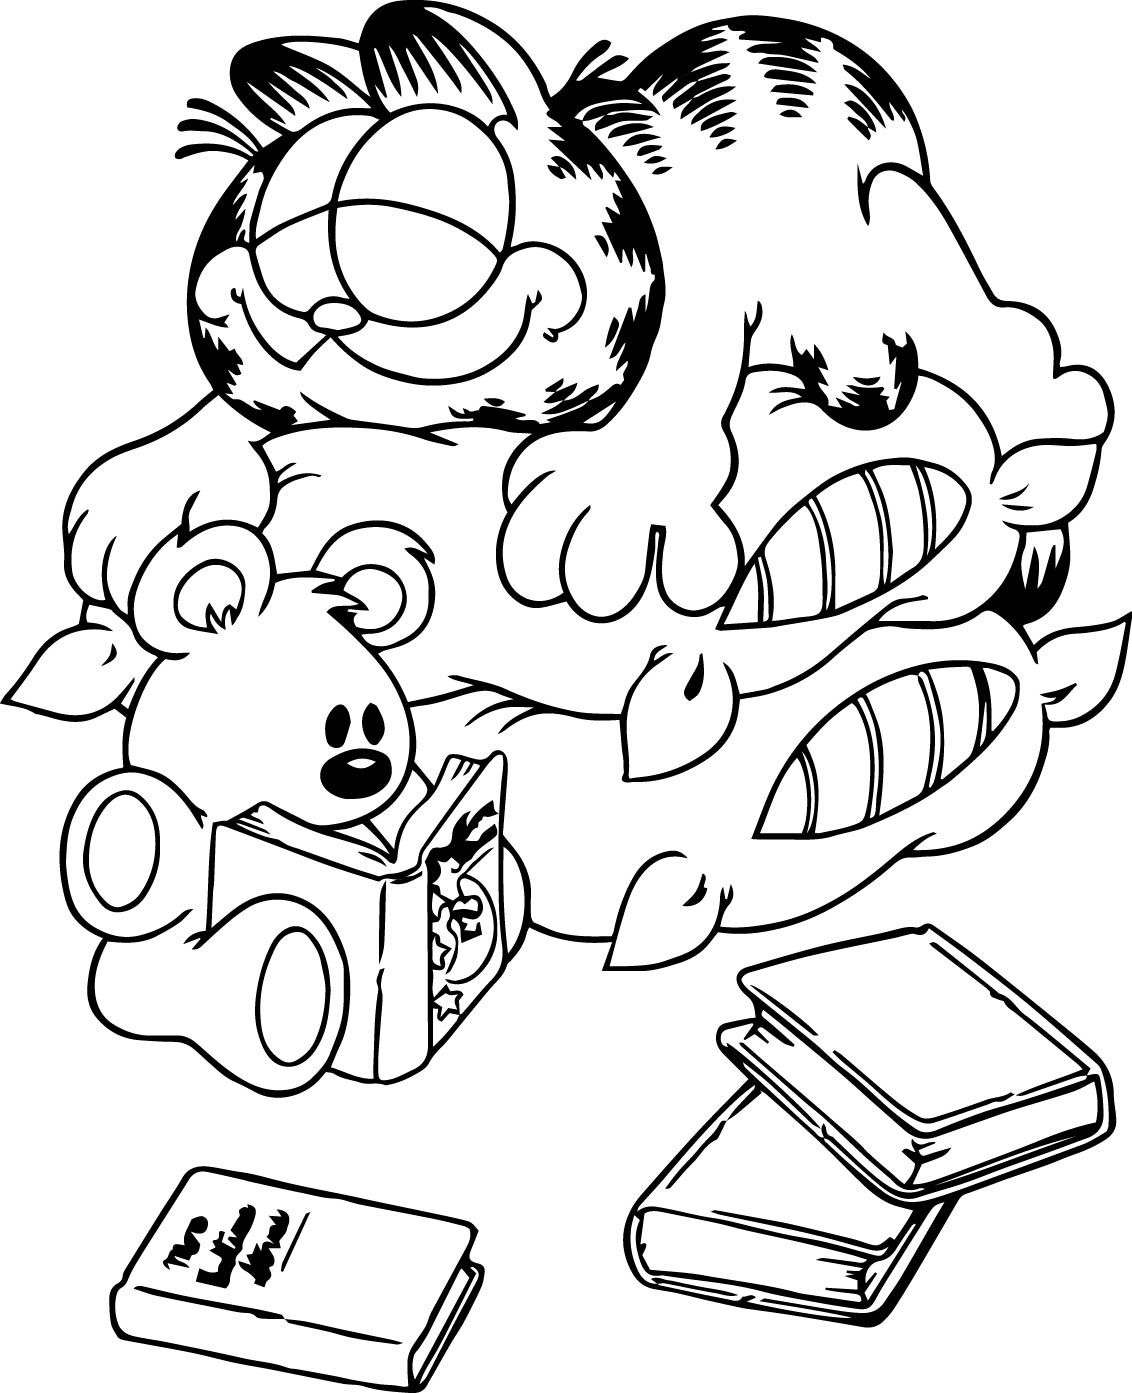 garfield coloring pictures free garfield the cat coloring pages for kids garfield pictures coloring